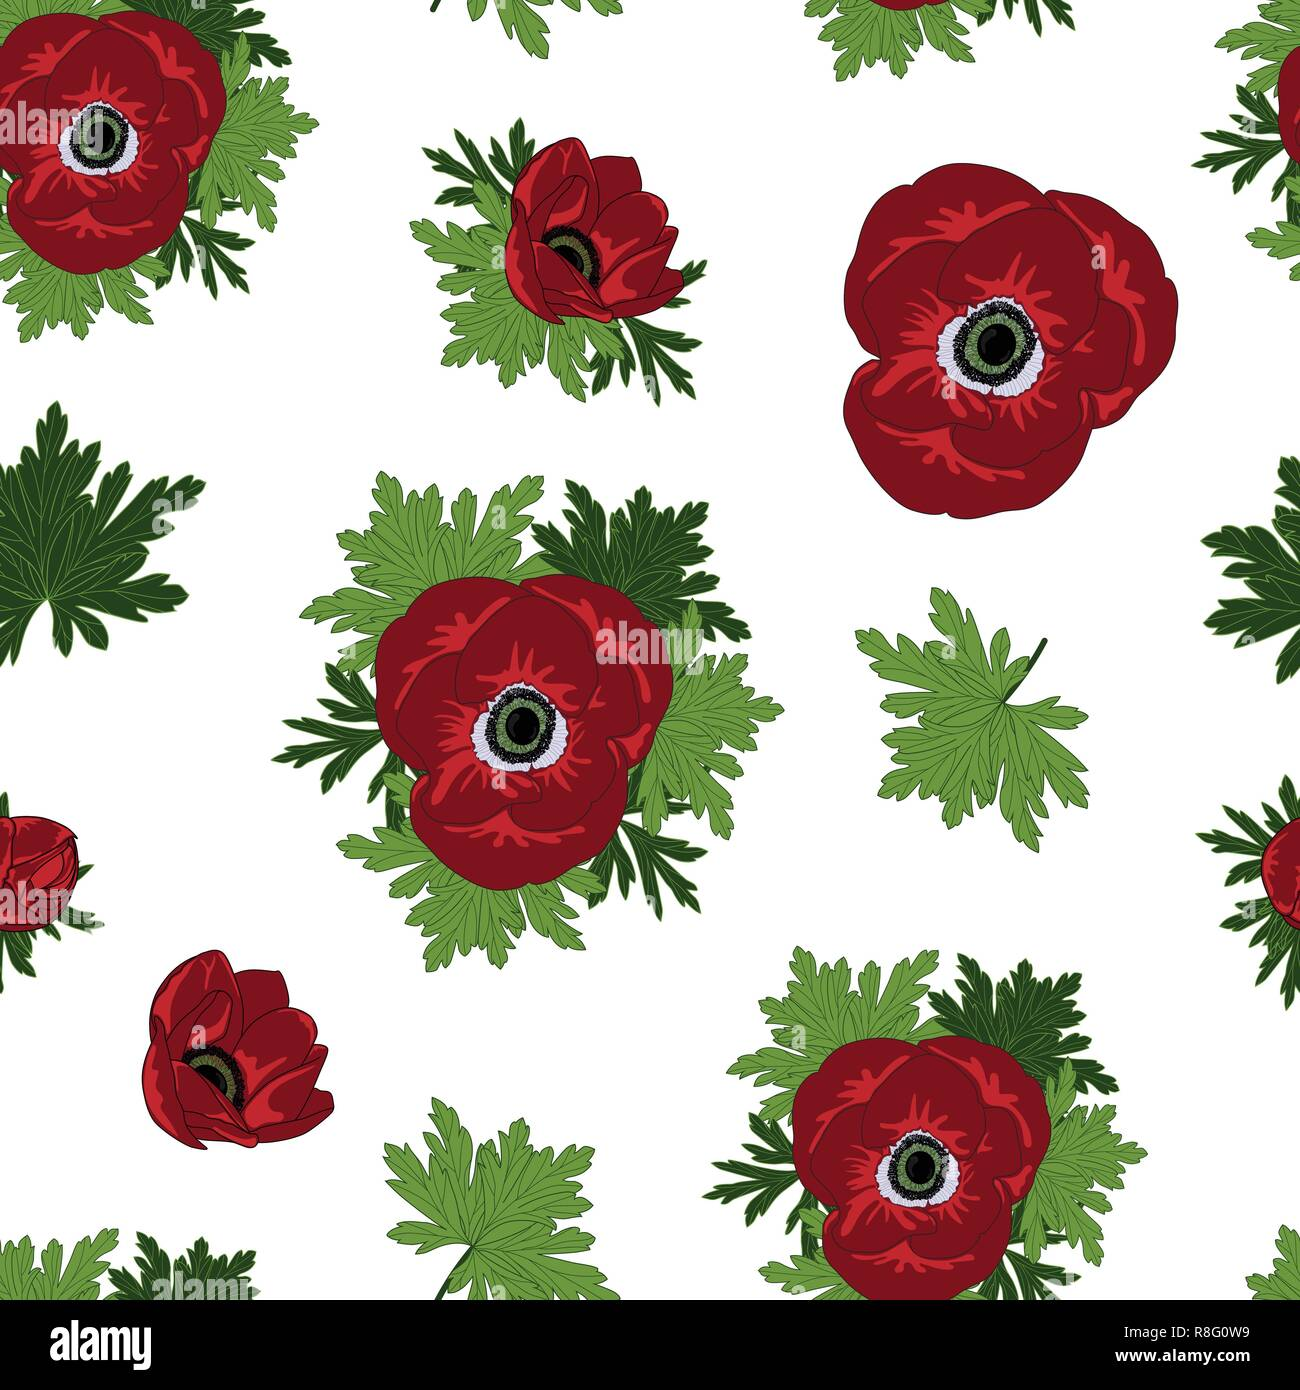 Floral seamless vector pattern with beautiful red anemone flowers. - Stock Vector